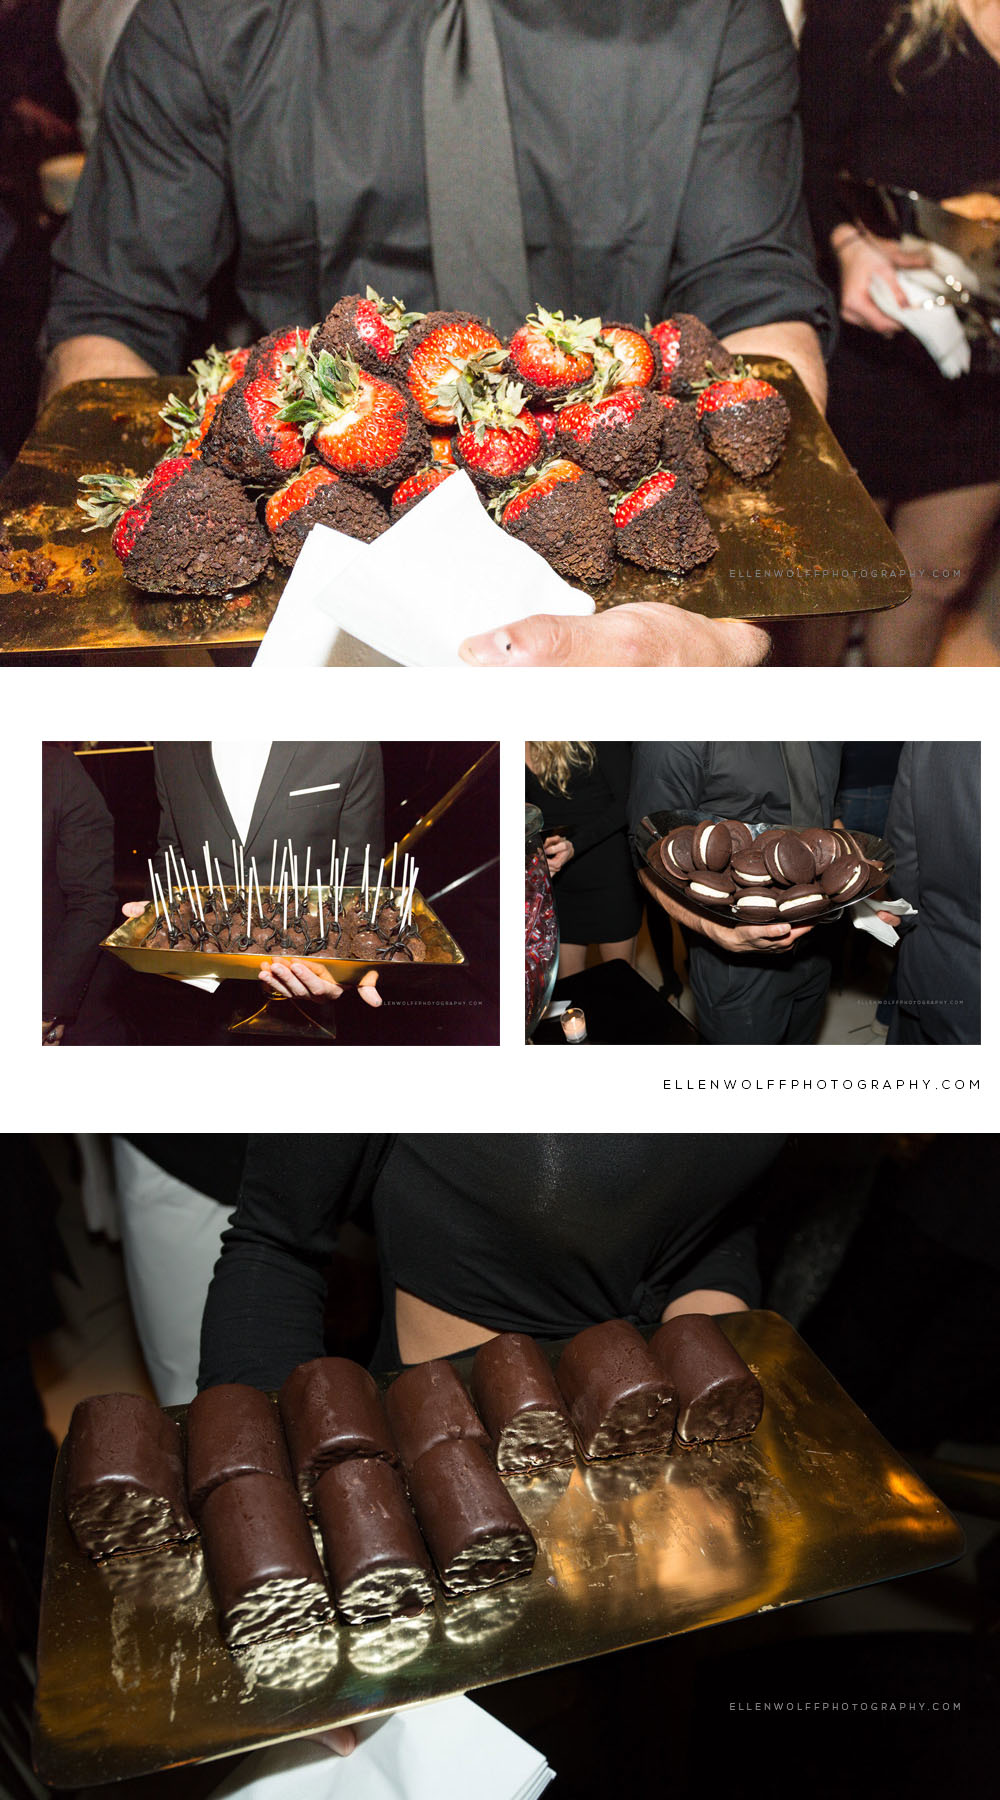 chocolate covered desserts served by cosutmed servers